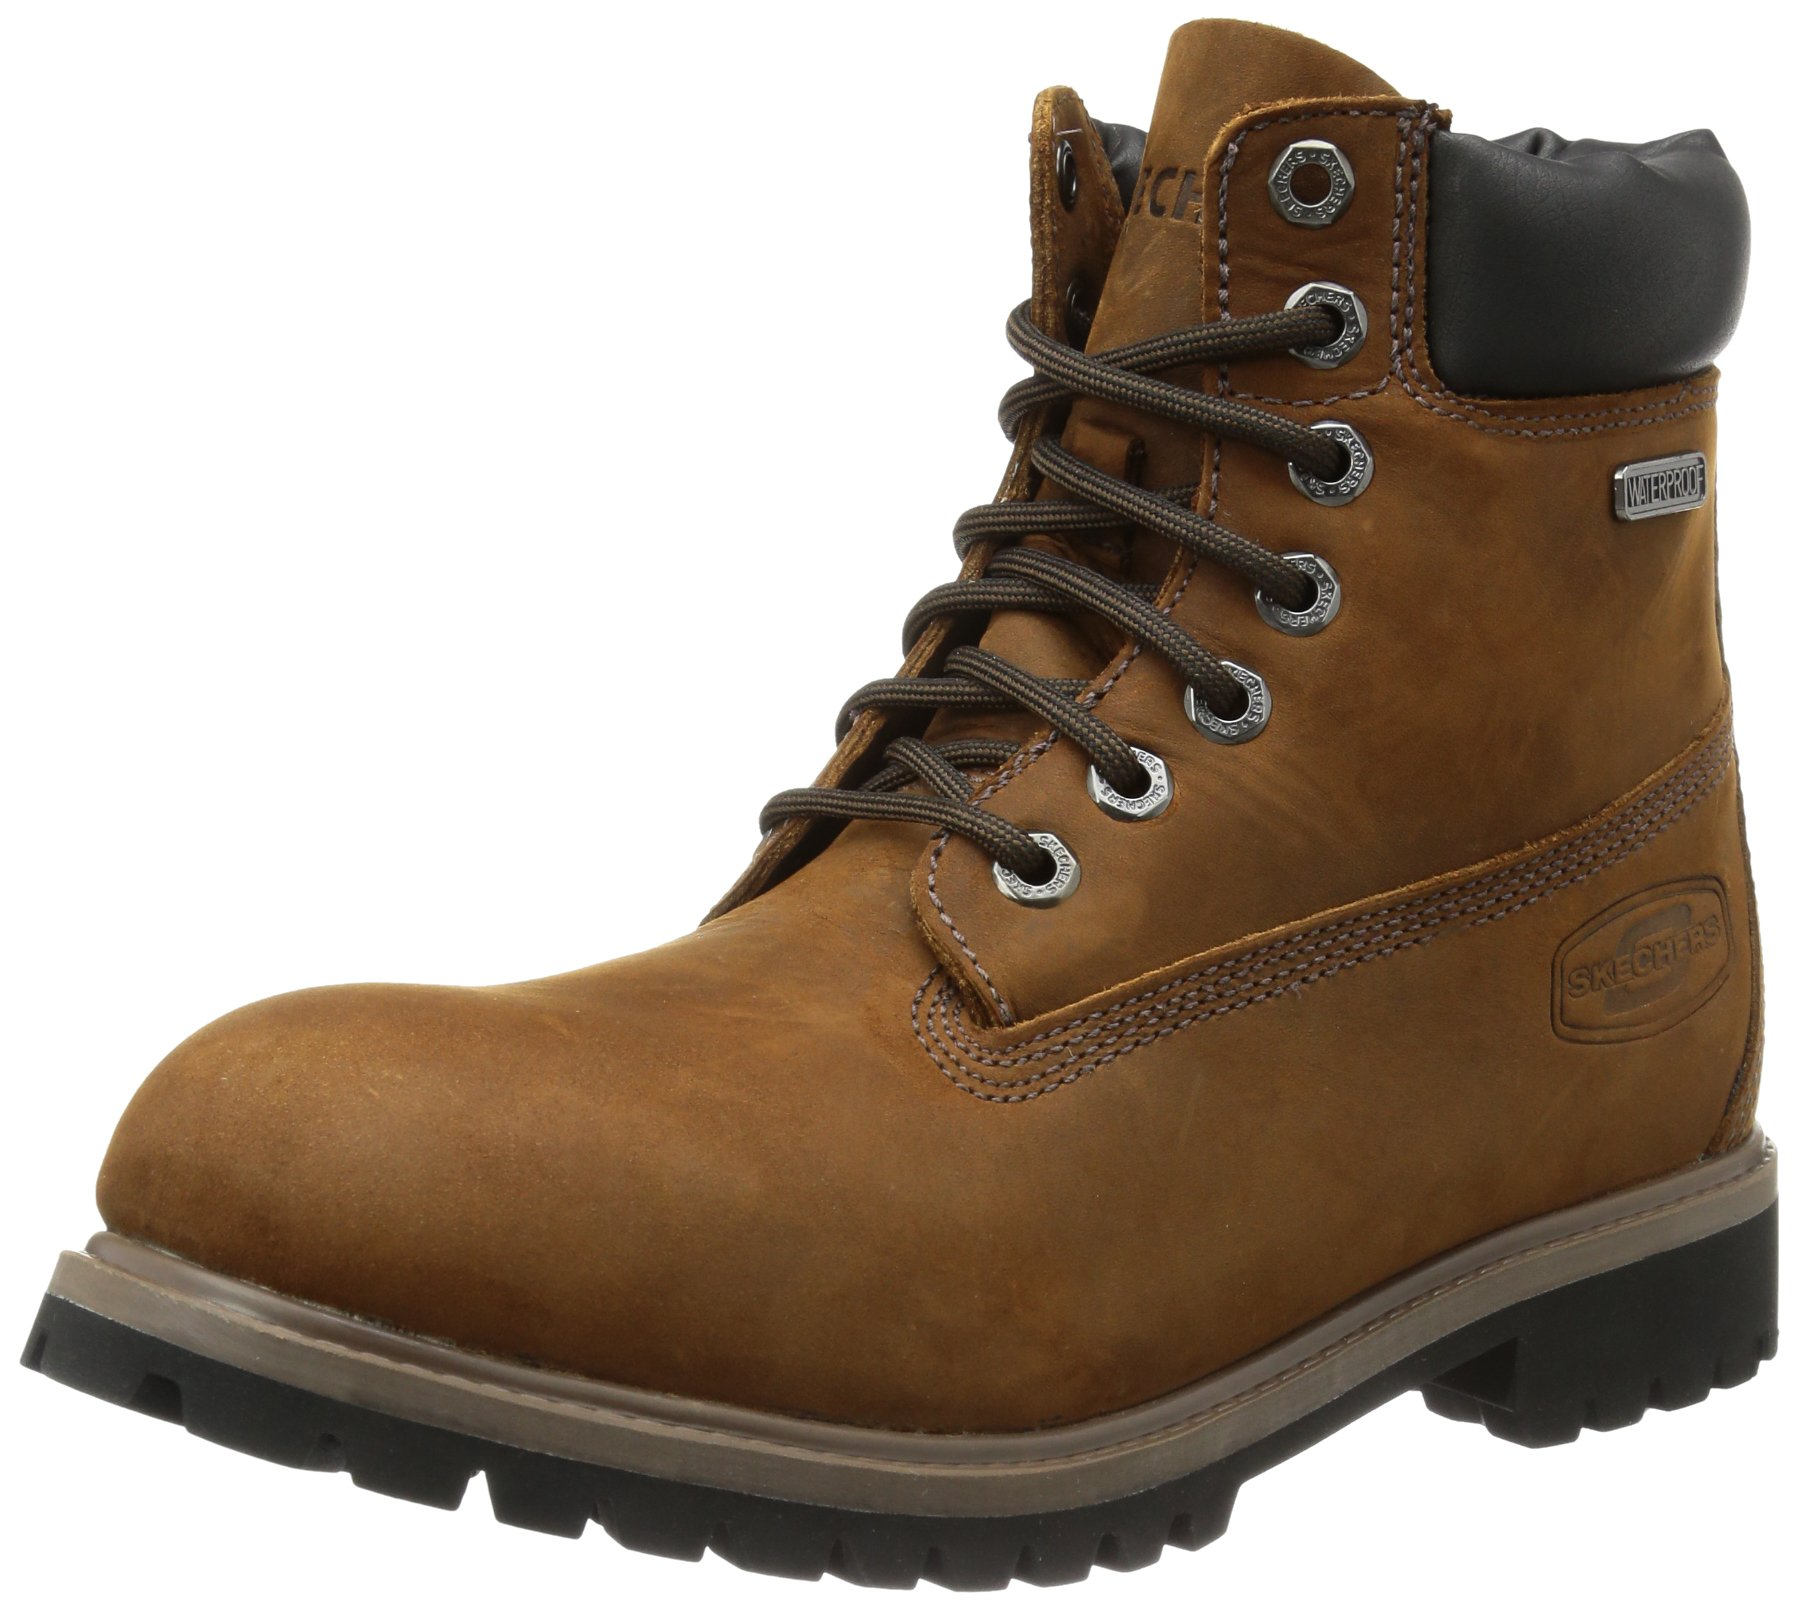 Skechers Men's Rawling Dorson Boot